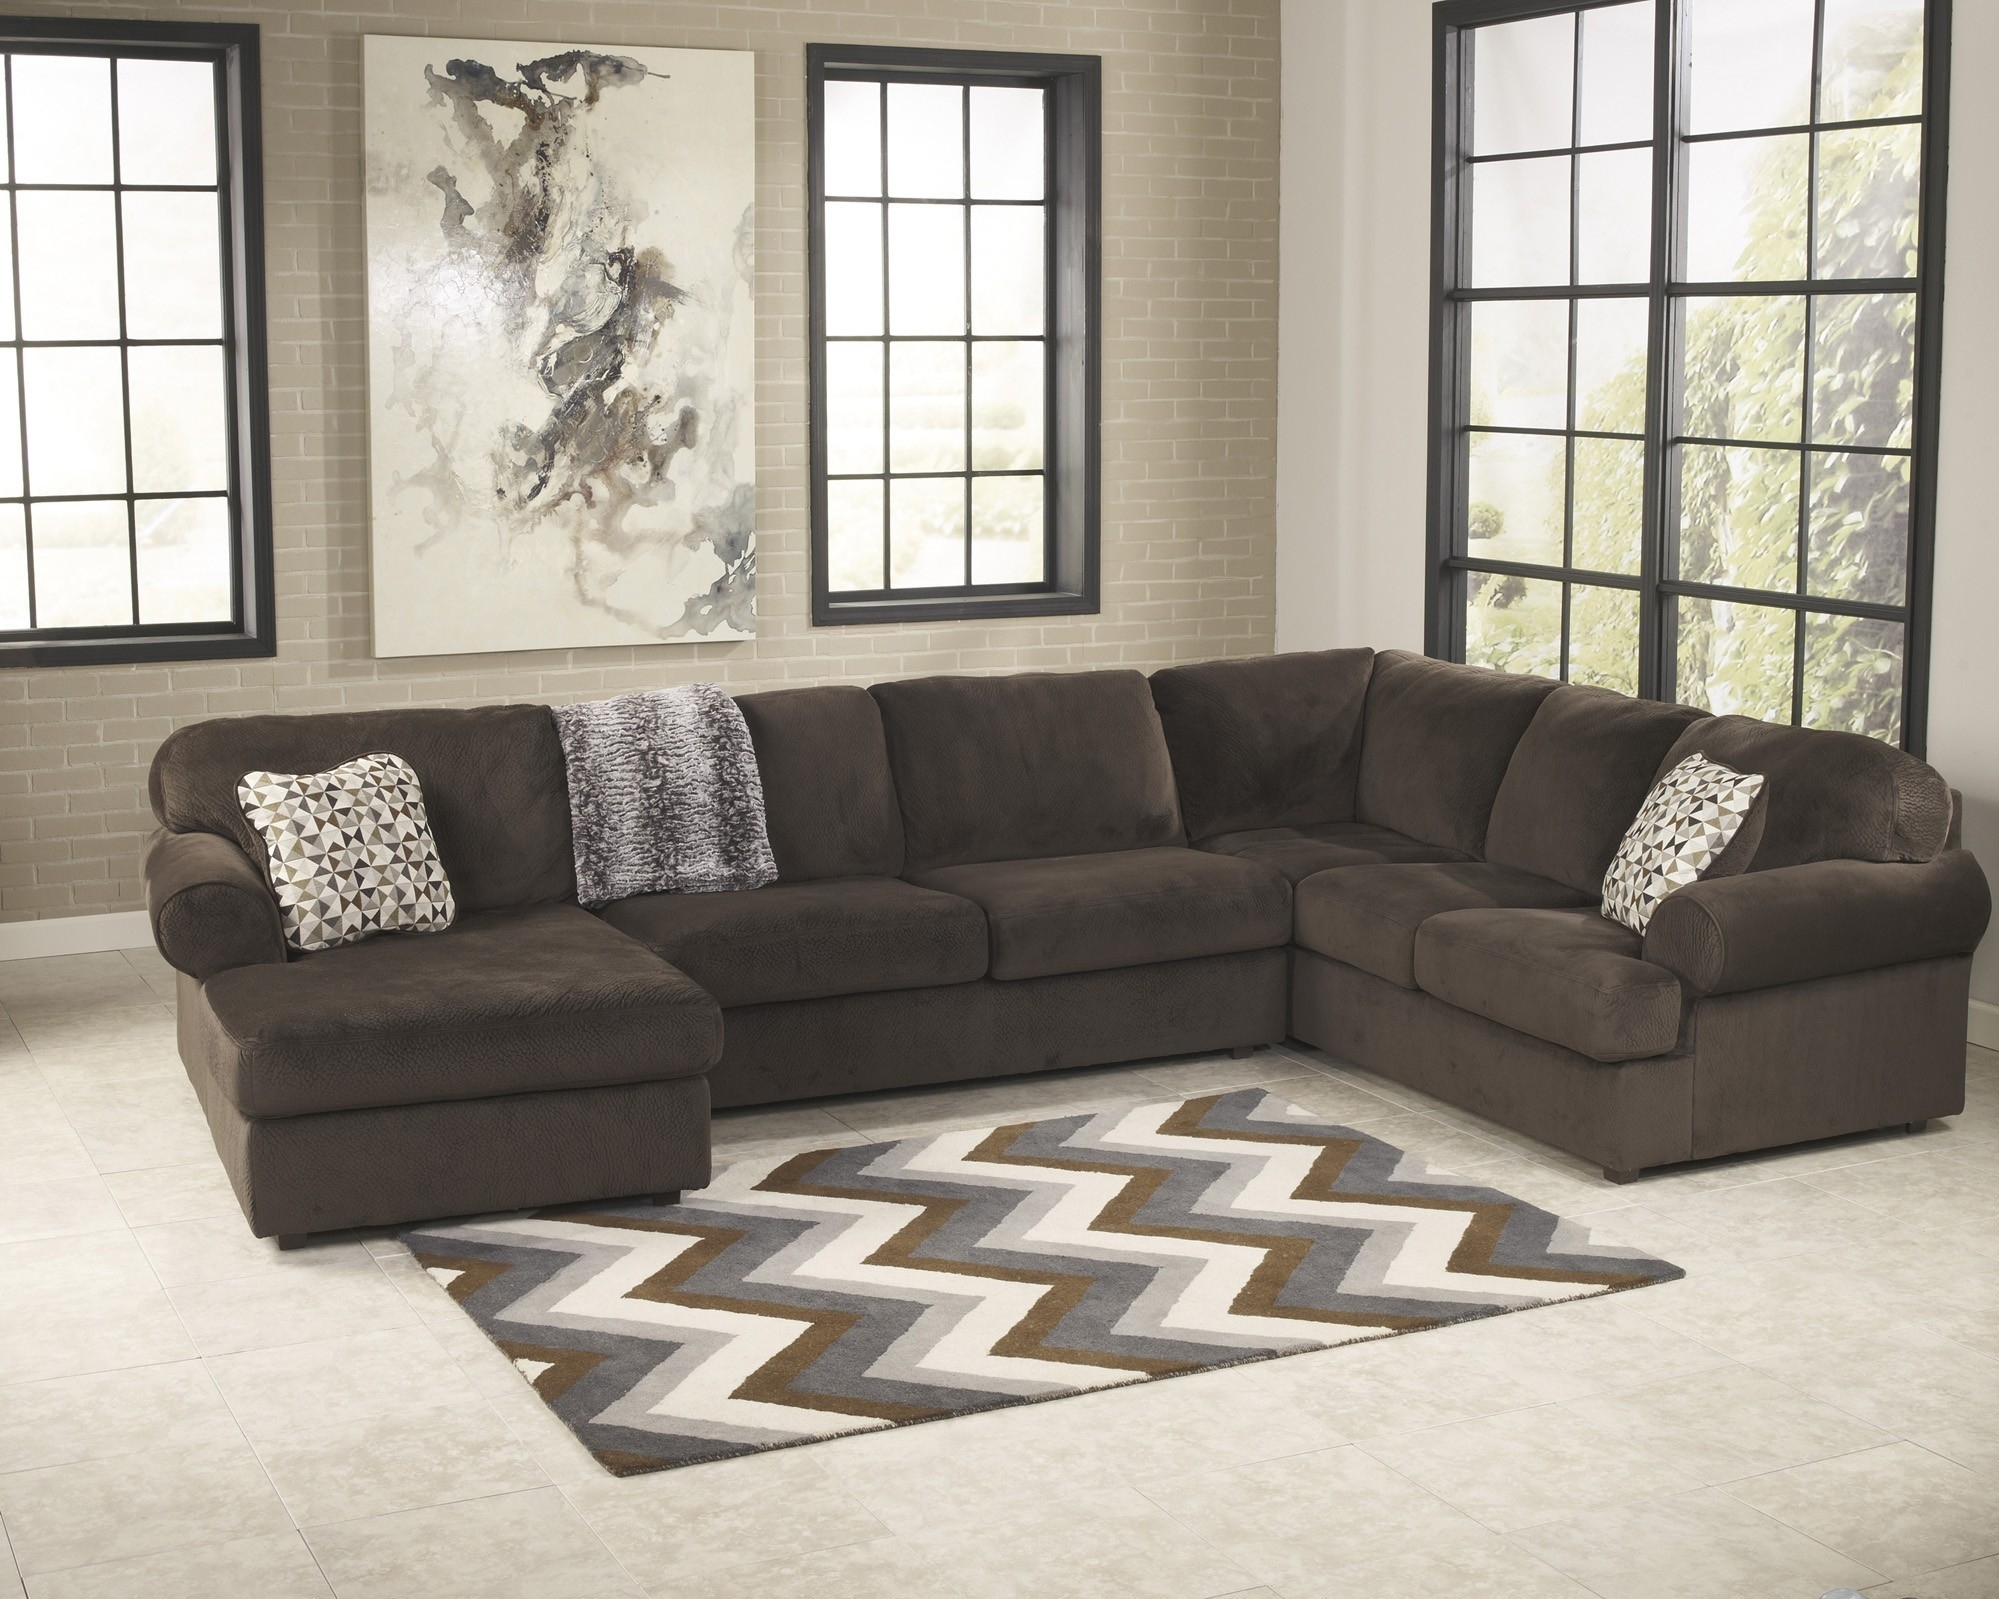 3 Piece Sectional Malbry Point W Laf Chaise Living Spaces 223533 0 Throughout Malbry Point 3 Piece Sectionals With Laf Chaise (Photo 9 of 30)